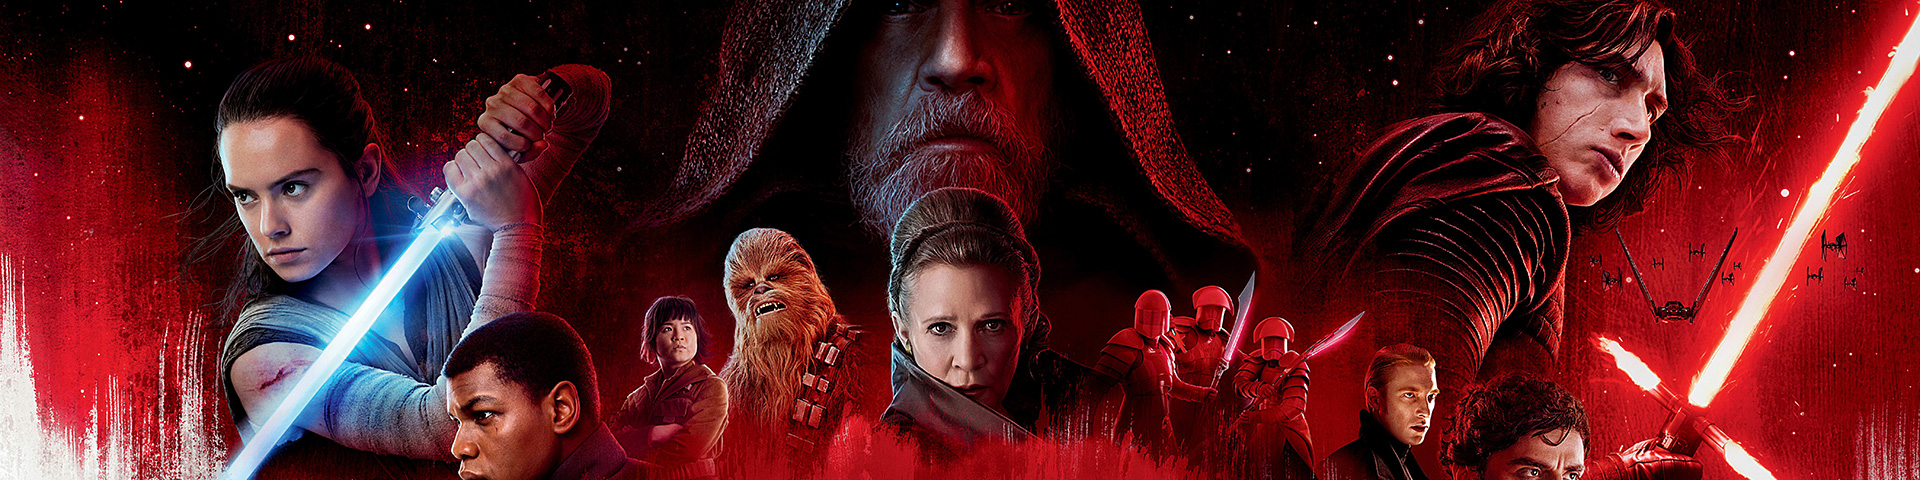 How Star Wars: The Last Jedi Should Have Ended